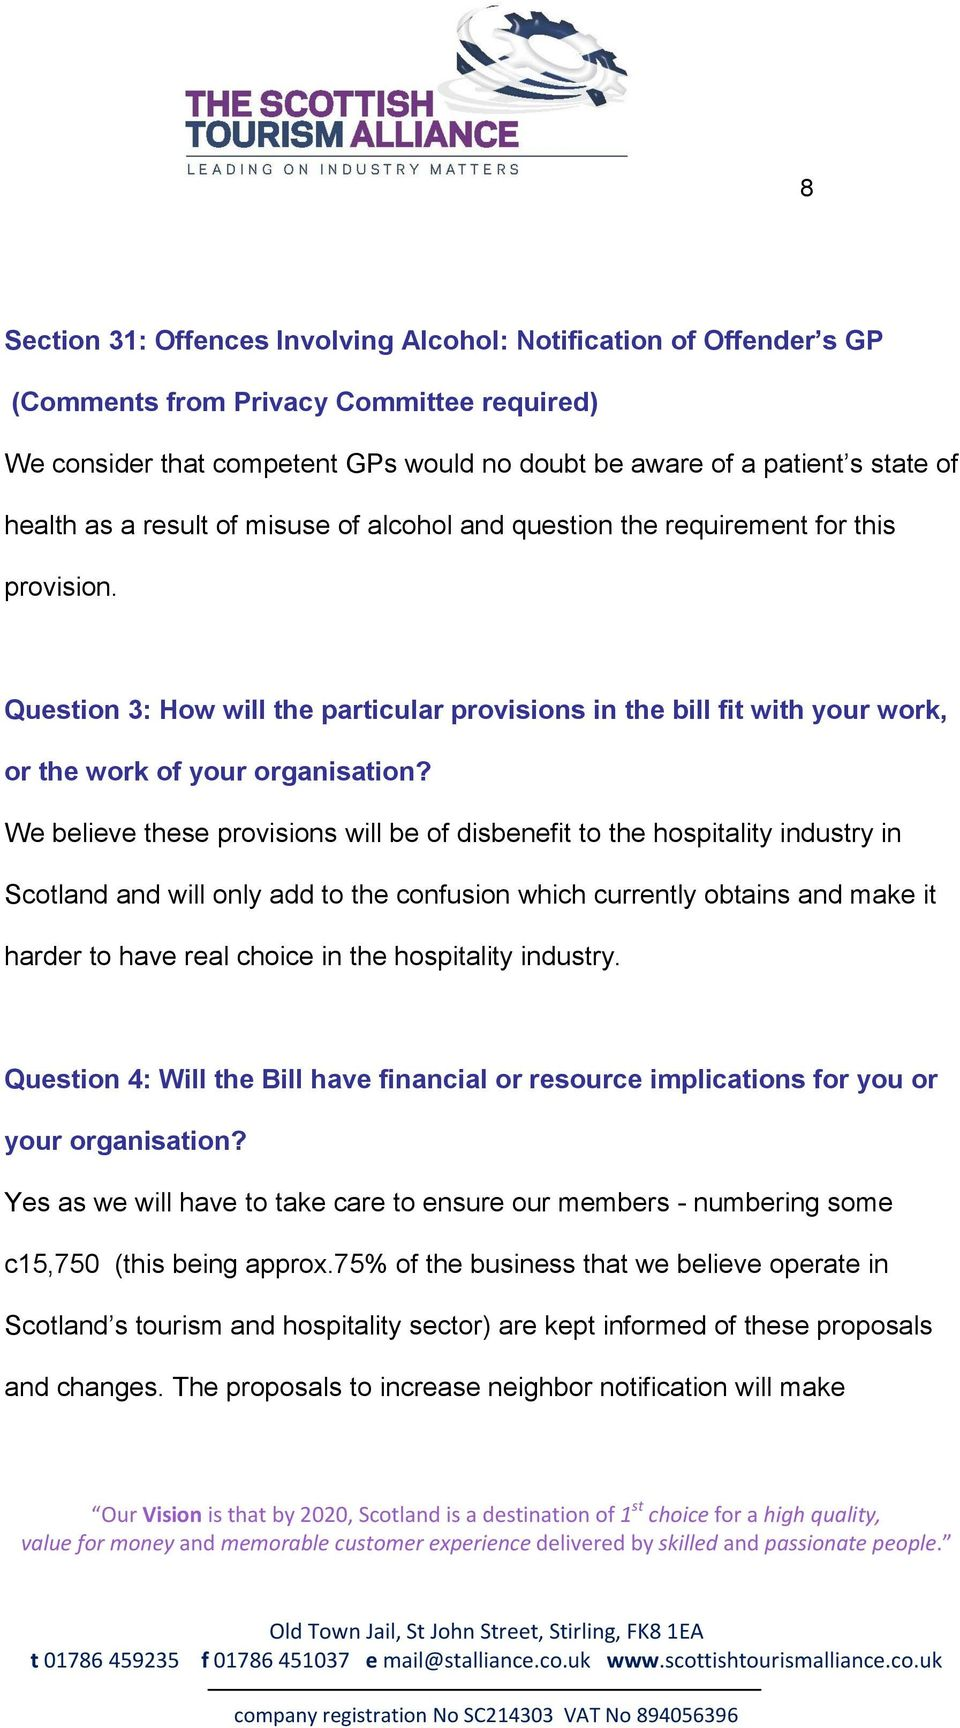 Question 3: How will the particular provisions in the bill fit with your work, or the work of your organisation?